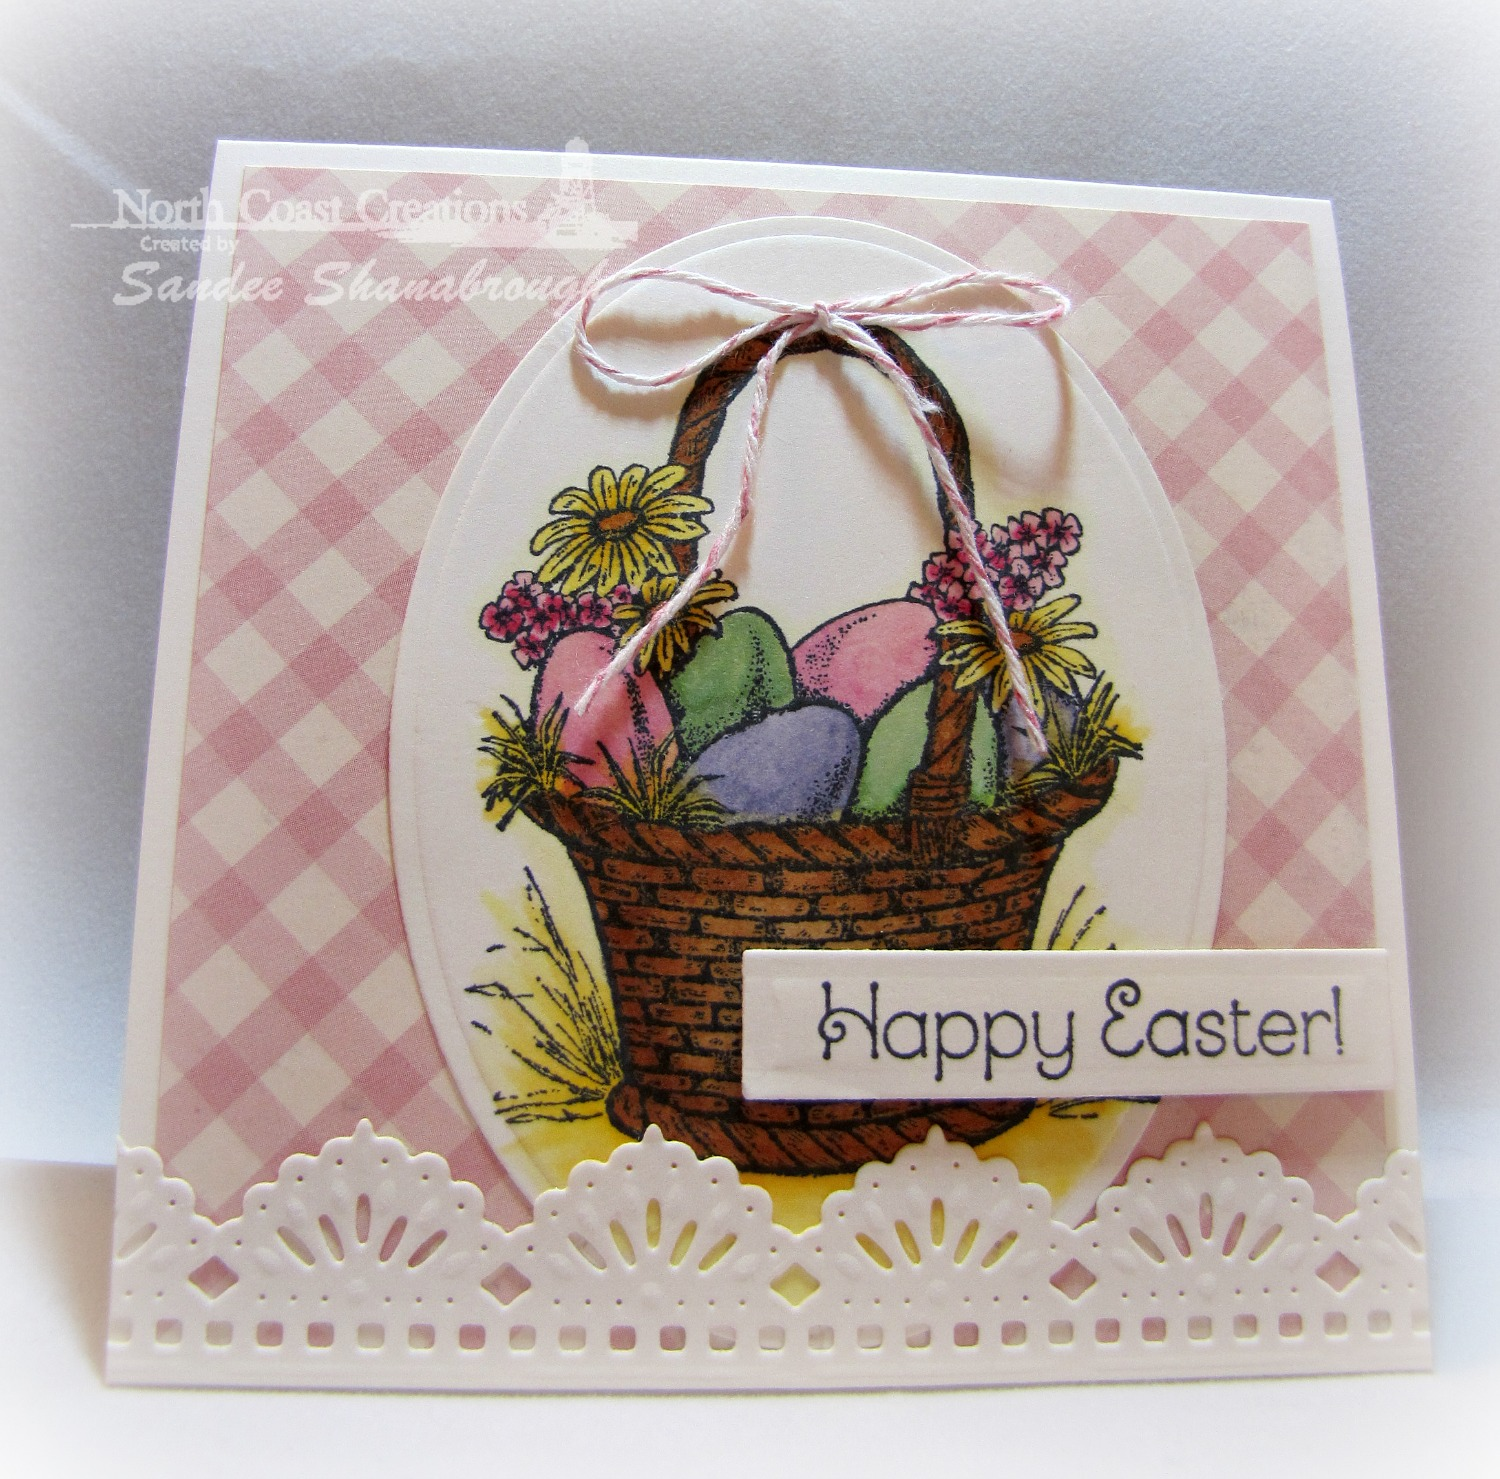 Stamps - North Coast Creations Easter Basket, ODBD Custom Beautiful Borders Dies